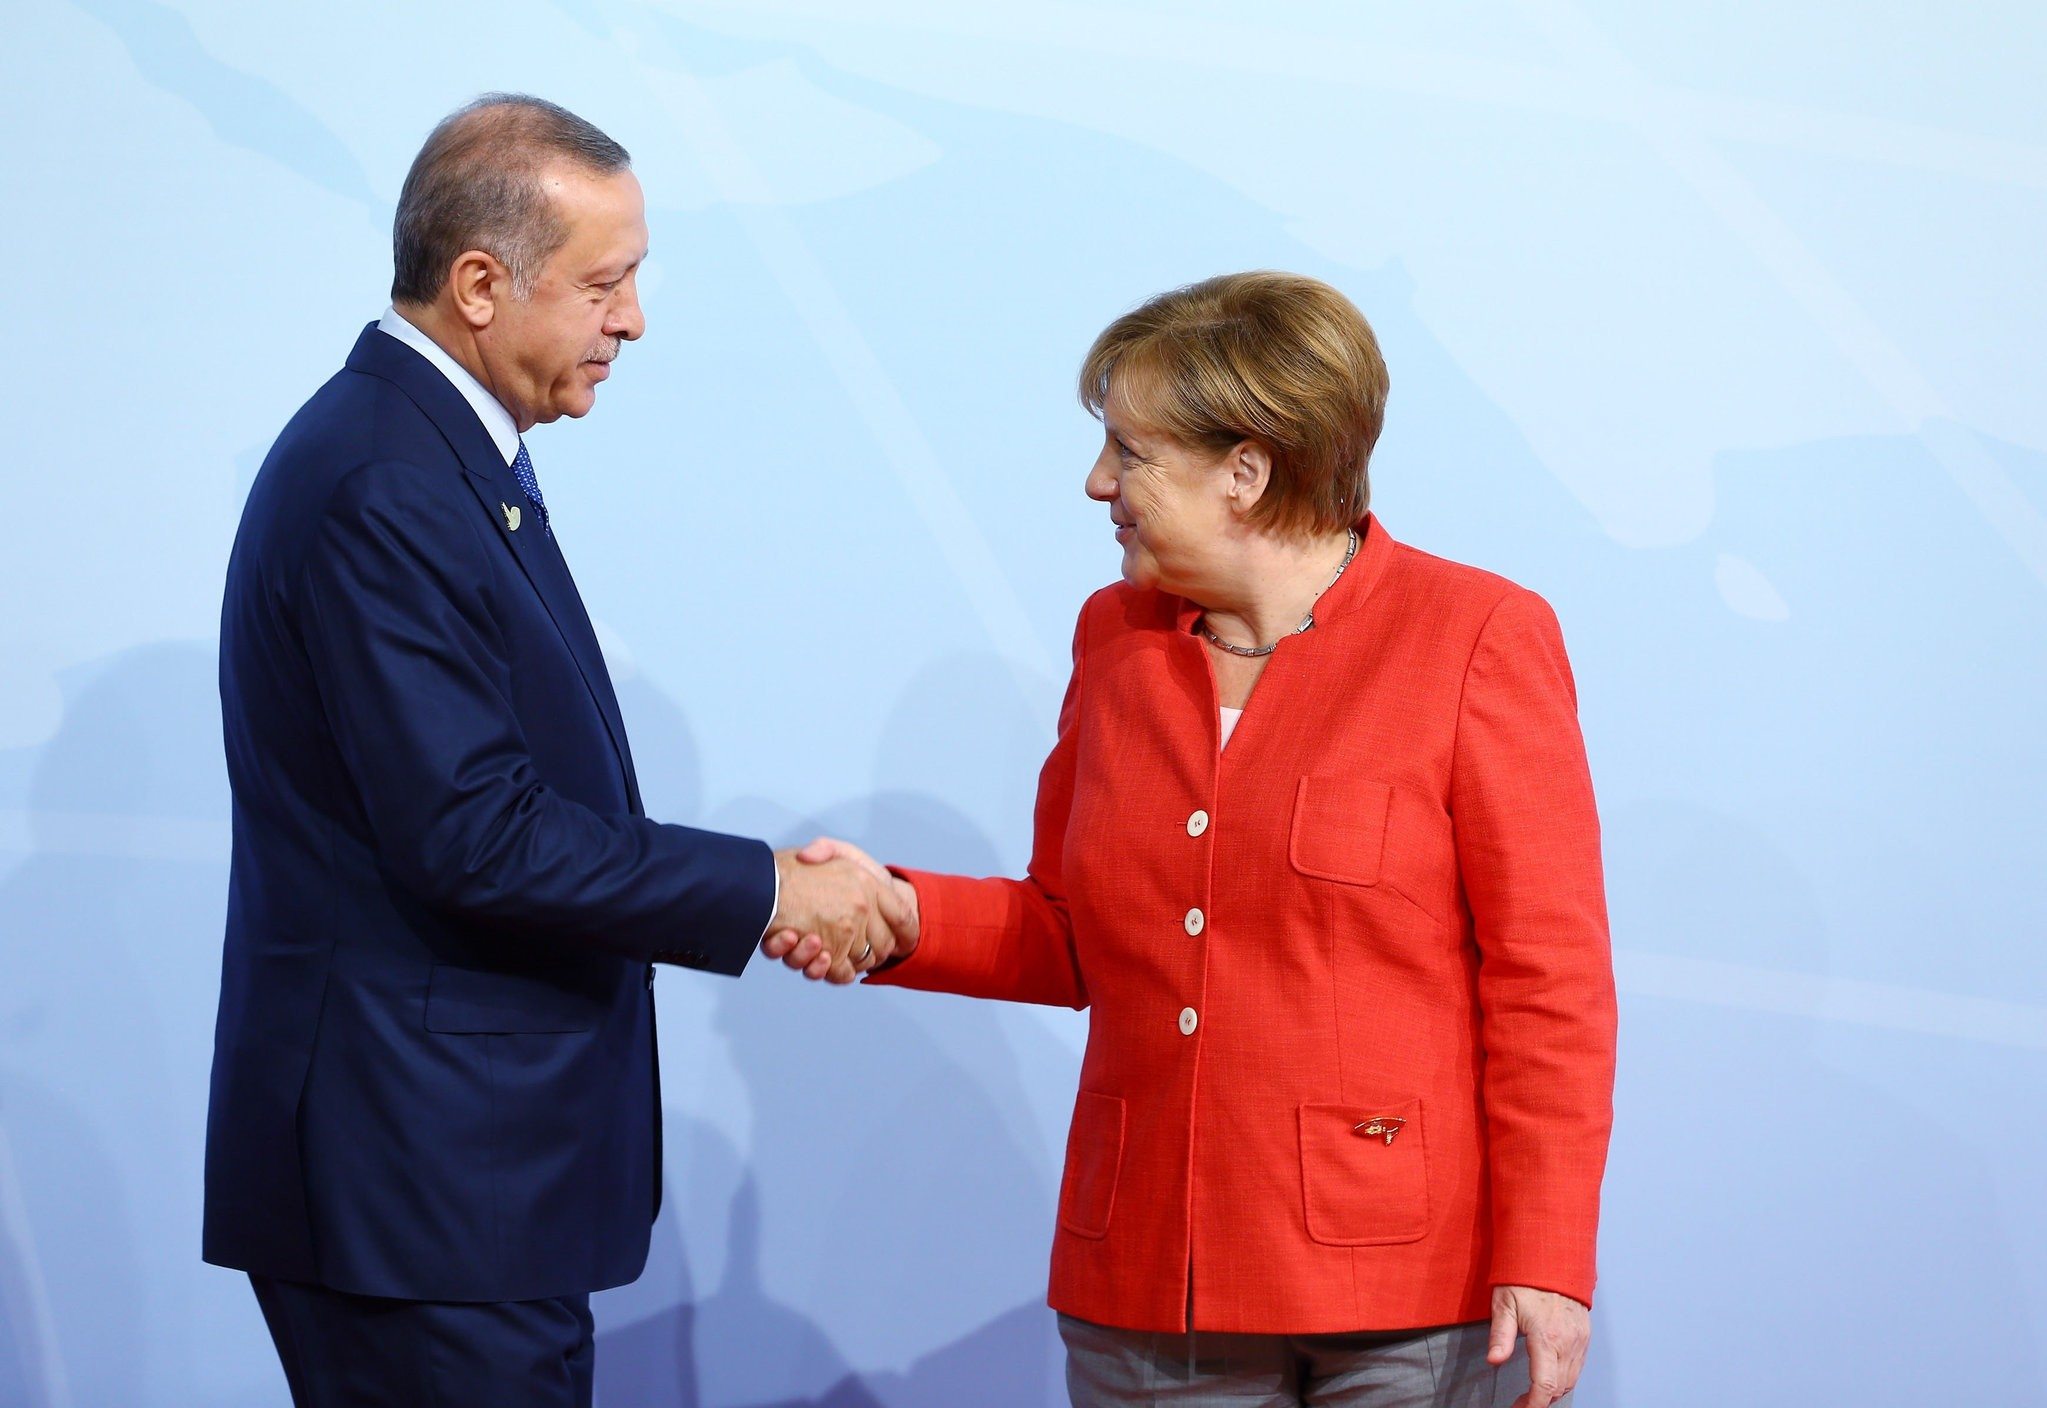 After tensions with the U.S. hit the Turkish lira, German leaders repeatedly underscored that a strong Turkish economy is important for the stability of Turkeyu2019s European partners.